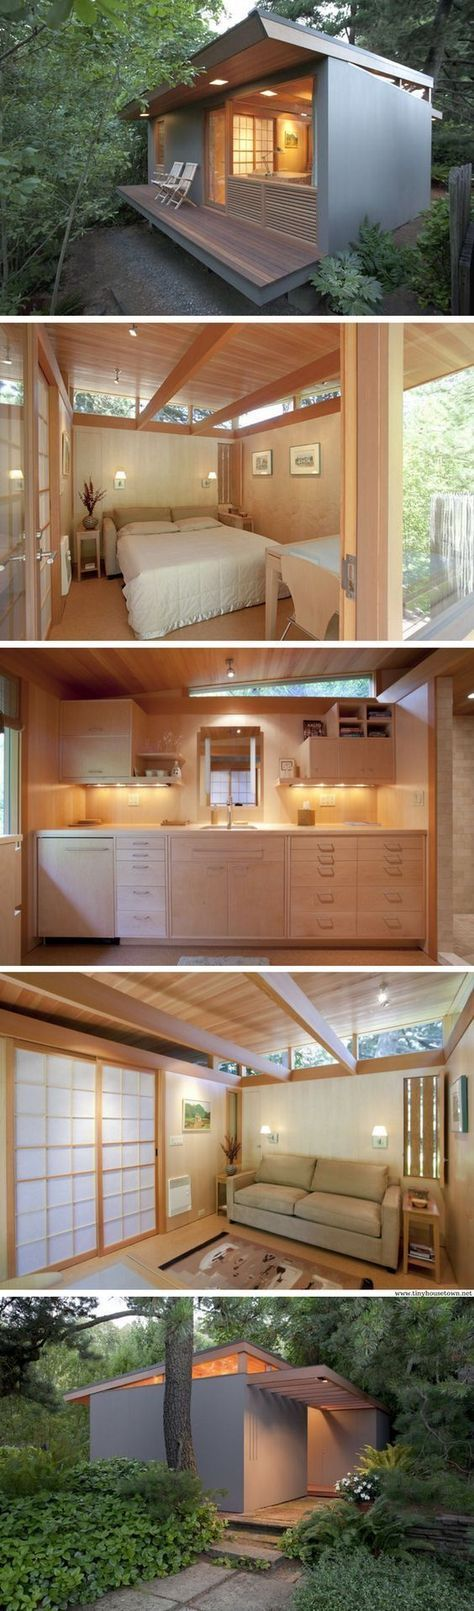 The Teahouse, Oregon, tiny home, (236 sq ft). Designed and transformed from an ol…